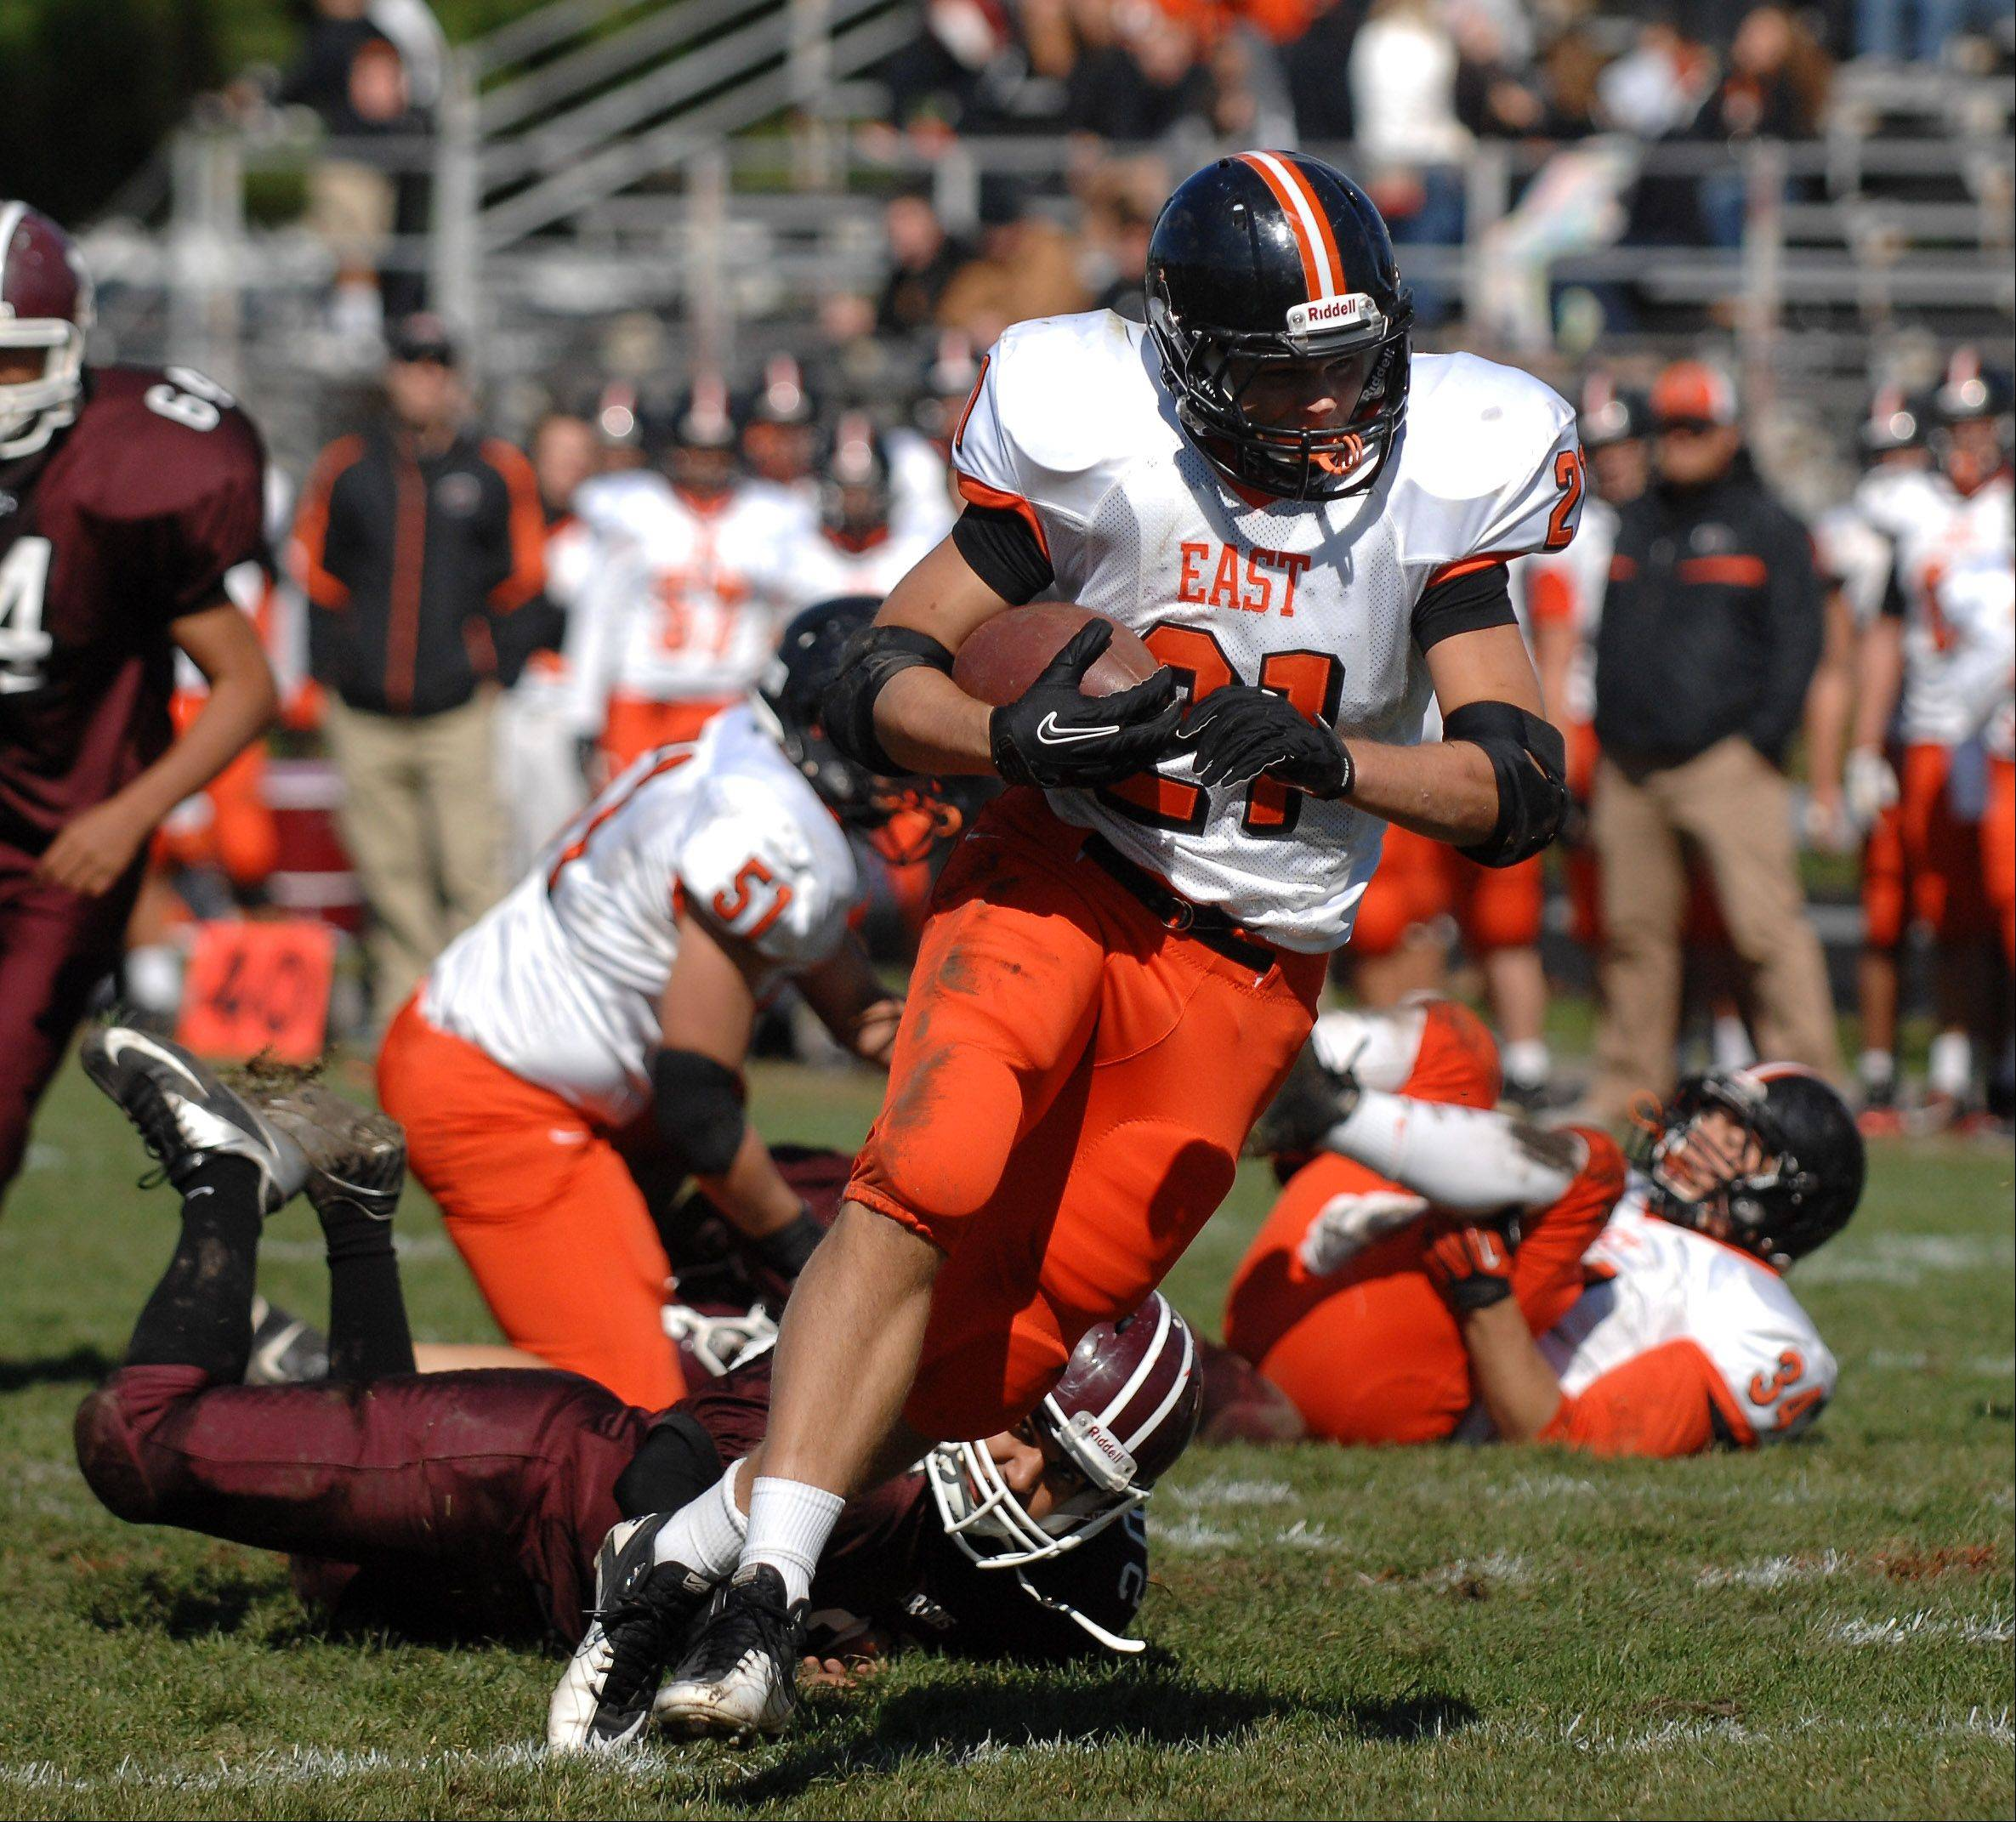 St. Charles East's Erik Anderson shed a number of Elgin tacklers en route to a second-quarter touchdown during Saturday's game at Memorial Field in Elgin.